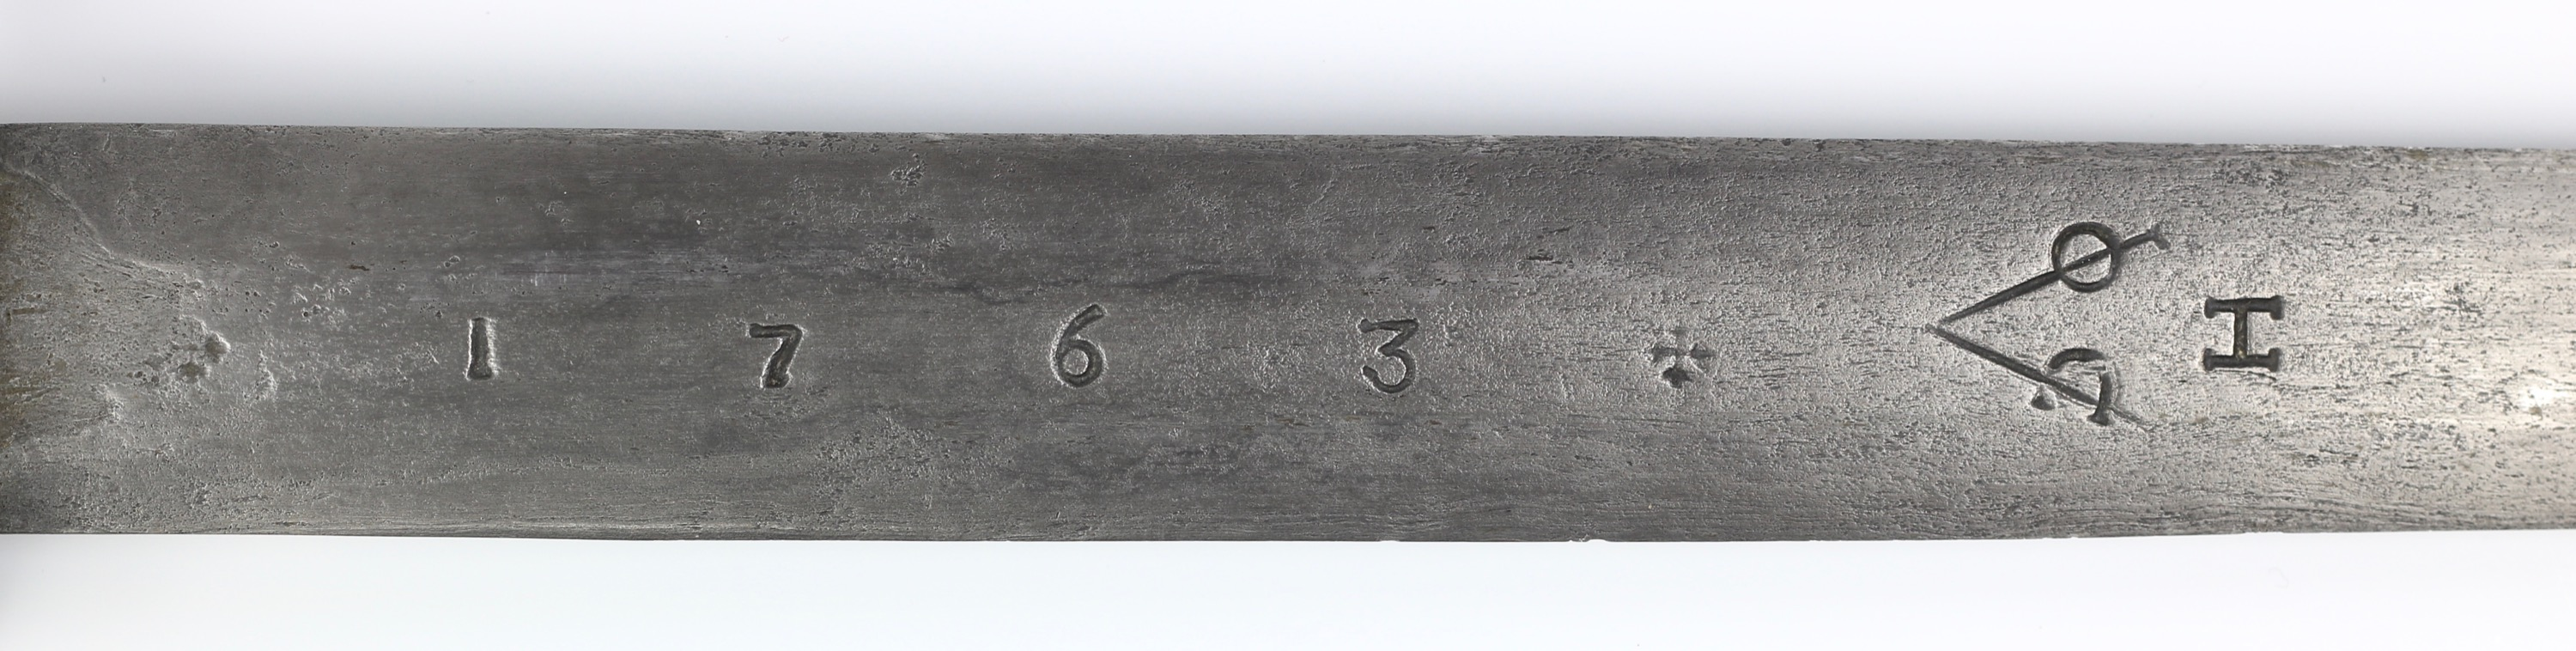 Hoorn chapter VOC 1763 markings